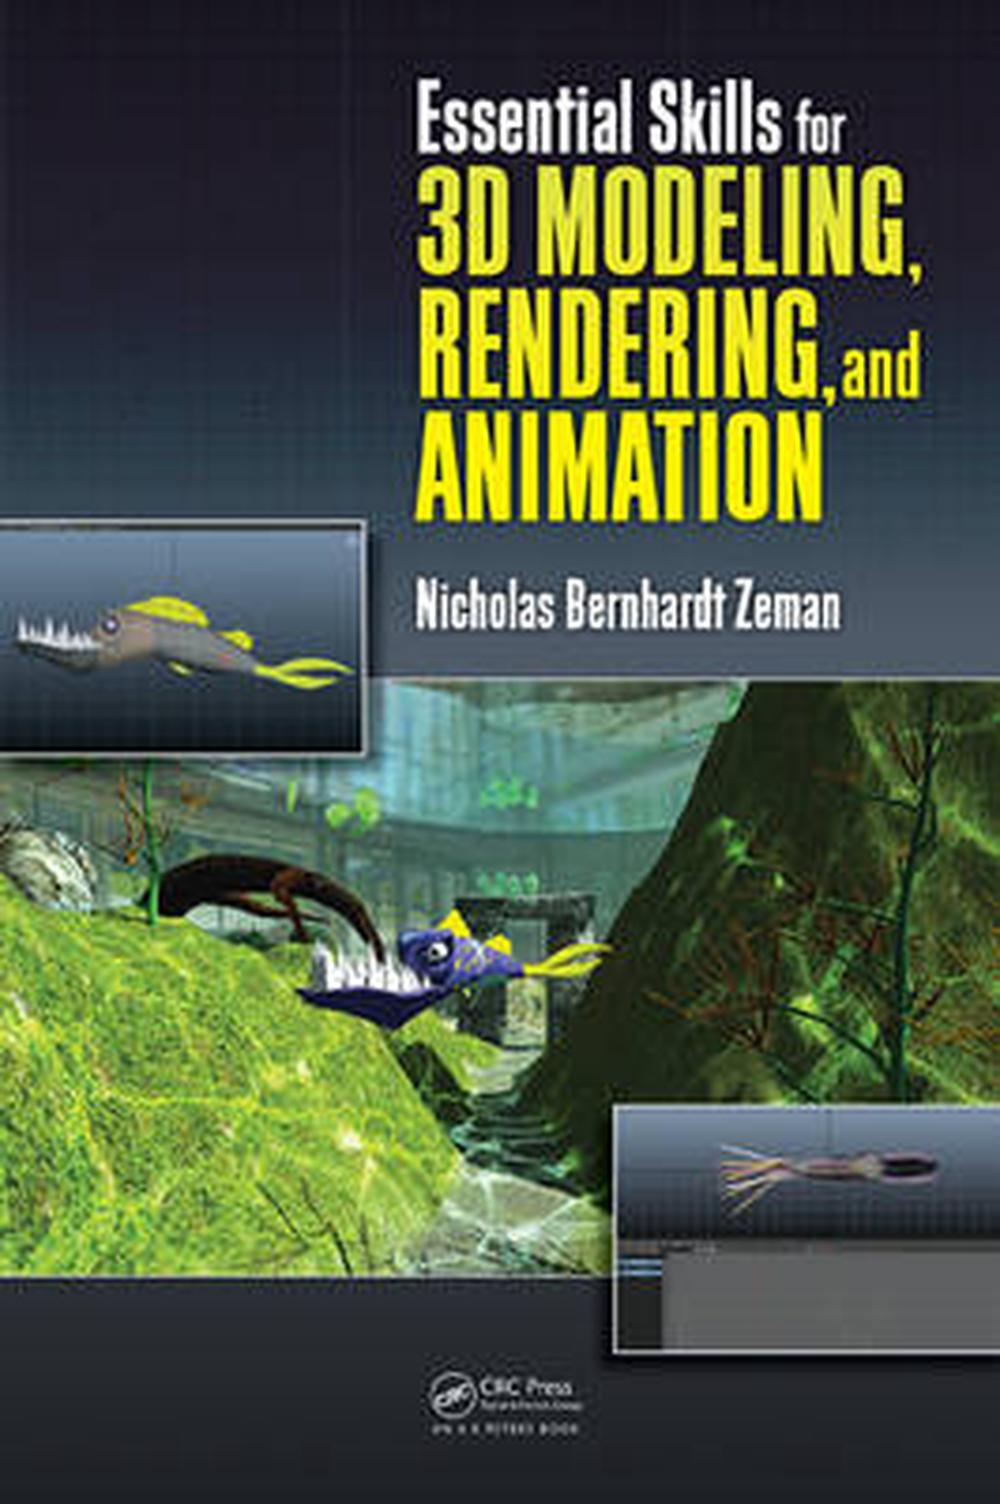 3d Modeling Rendering And Animation Details About Essential Skills For 3d Modeling Rendering And Animation By Nicholas Bernhardt